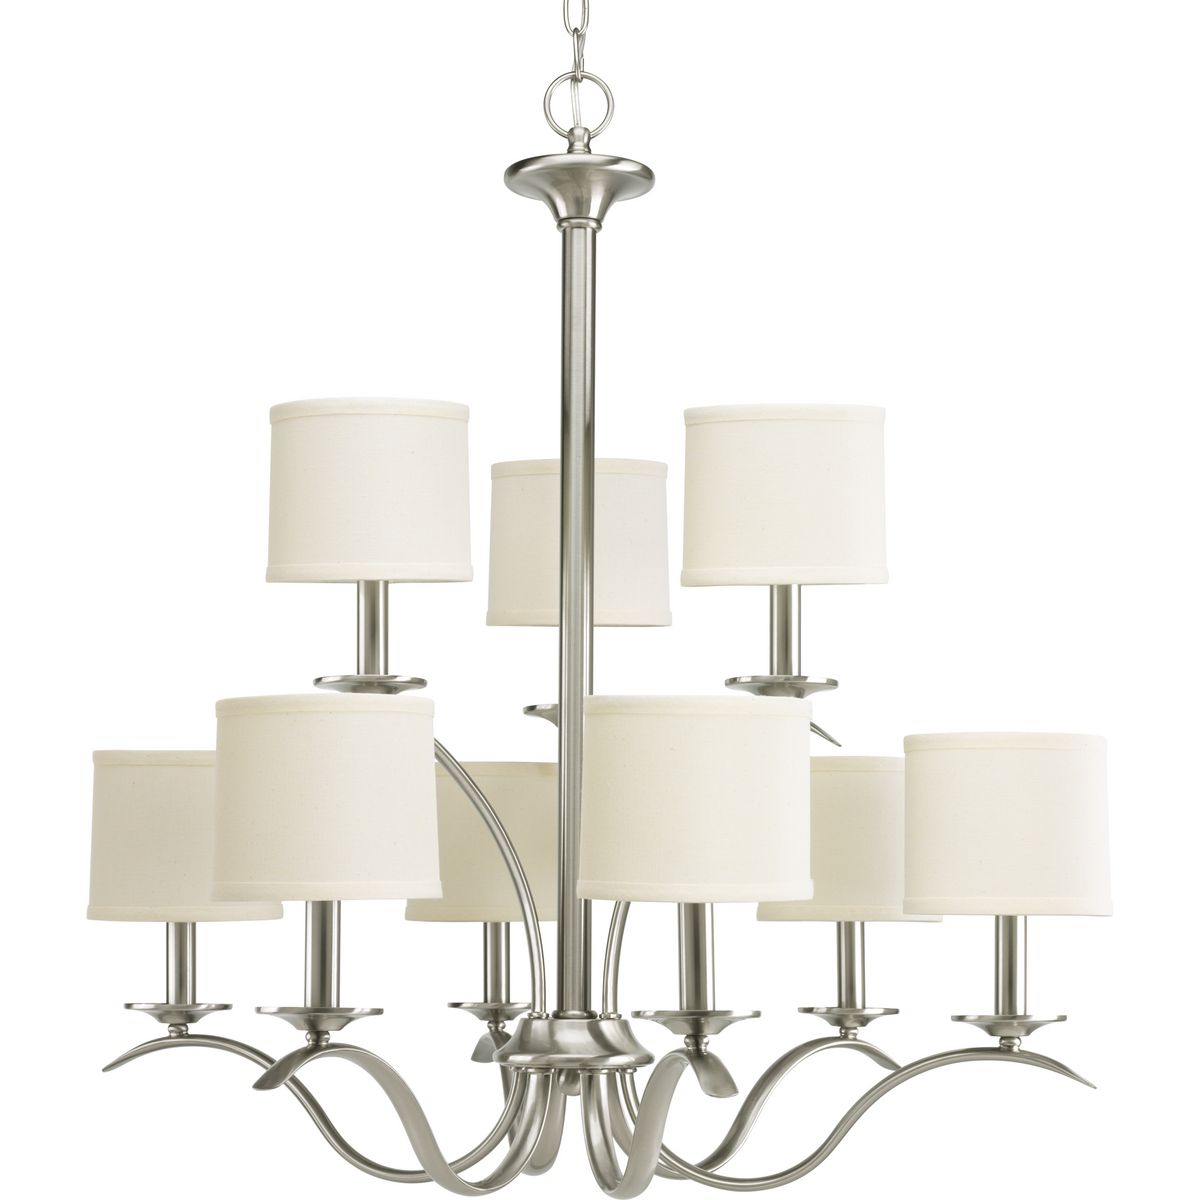 Inspire Collection Nine Light Two Tier Chandelier P4638